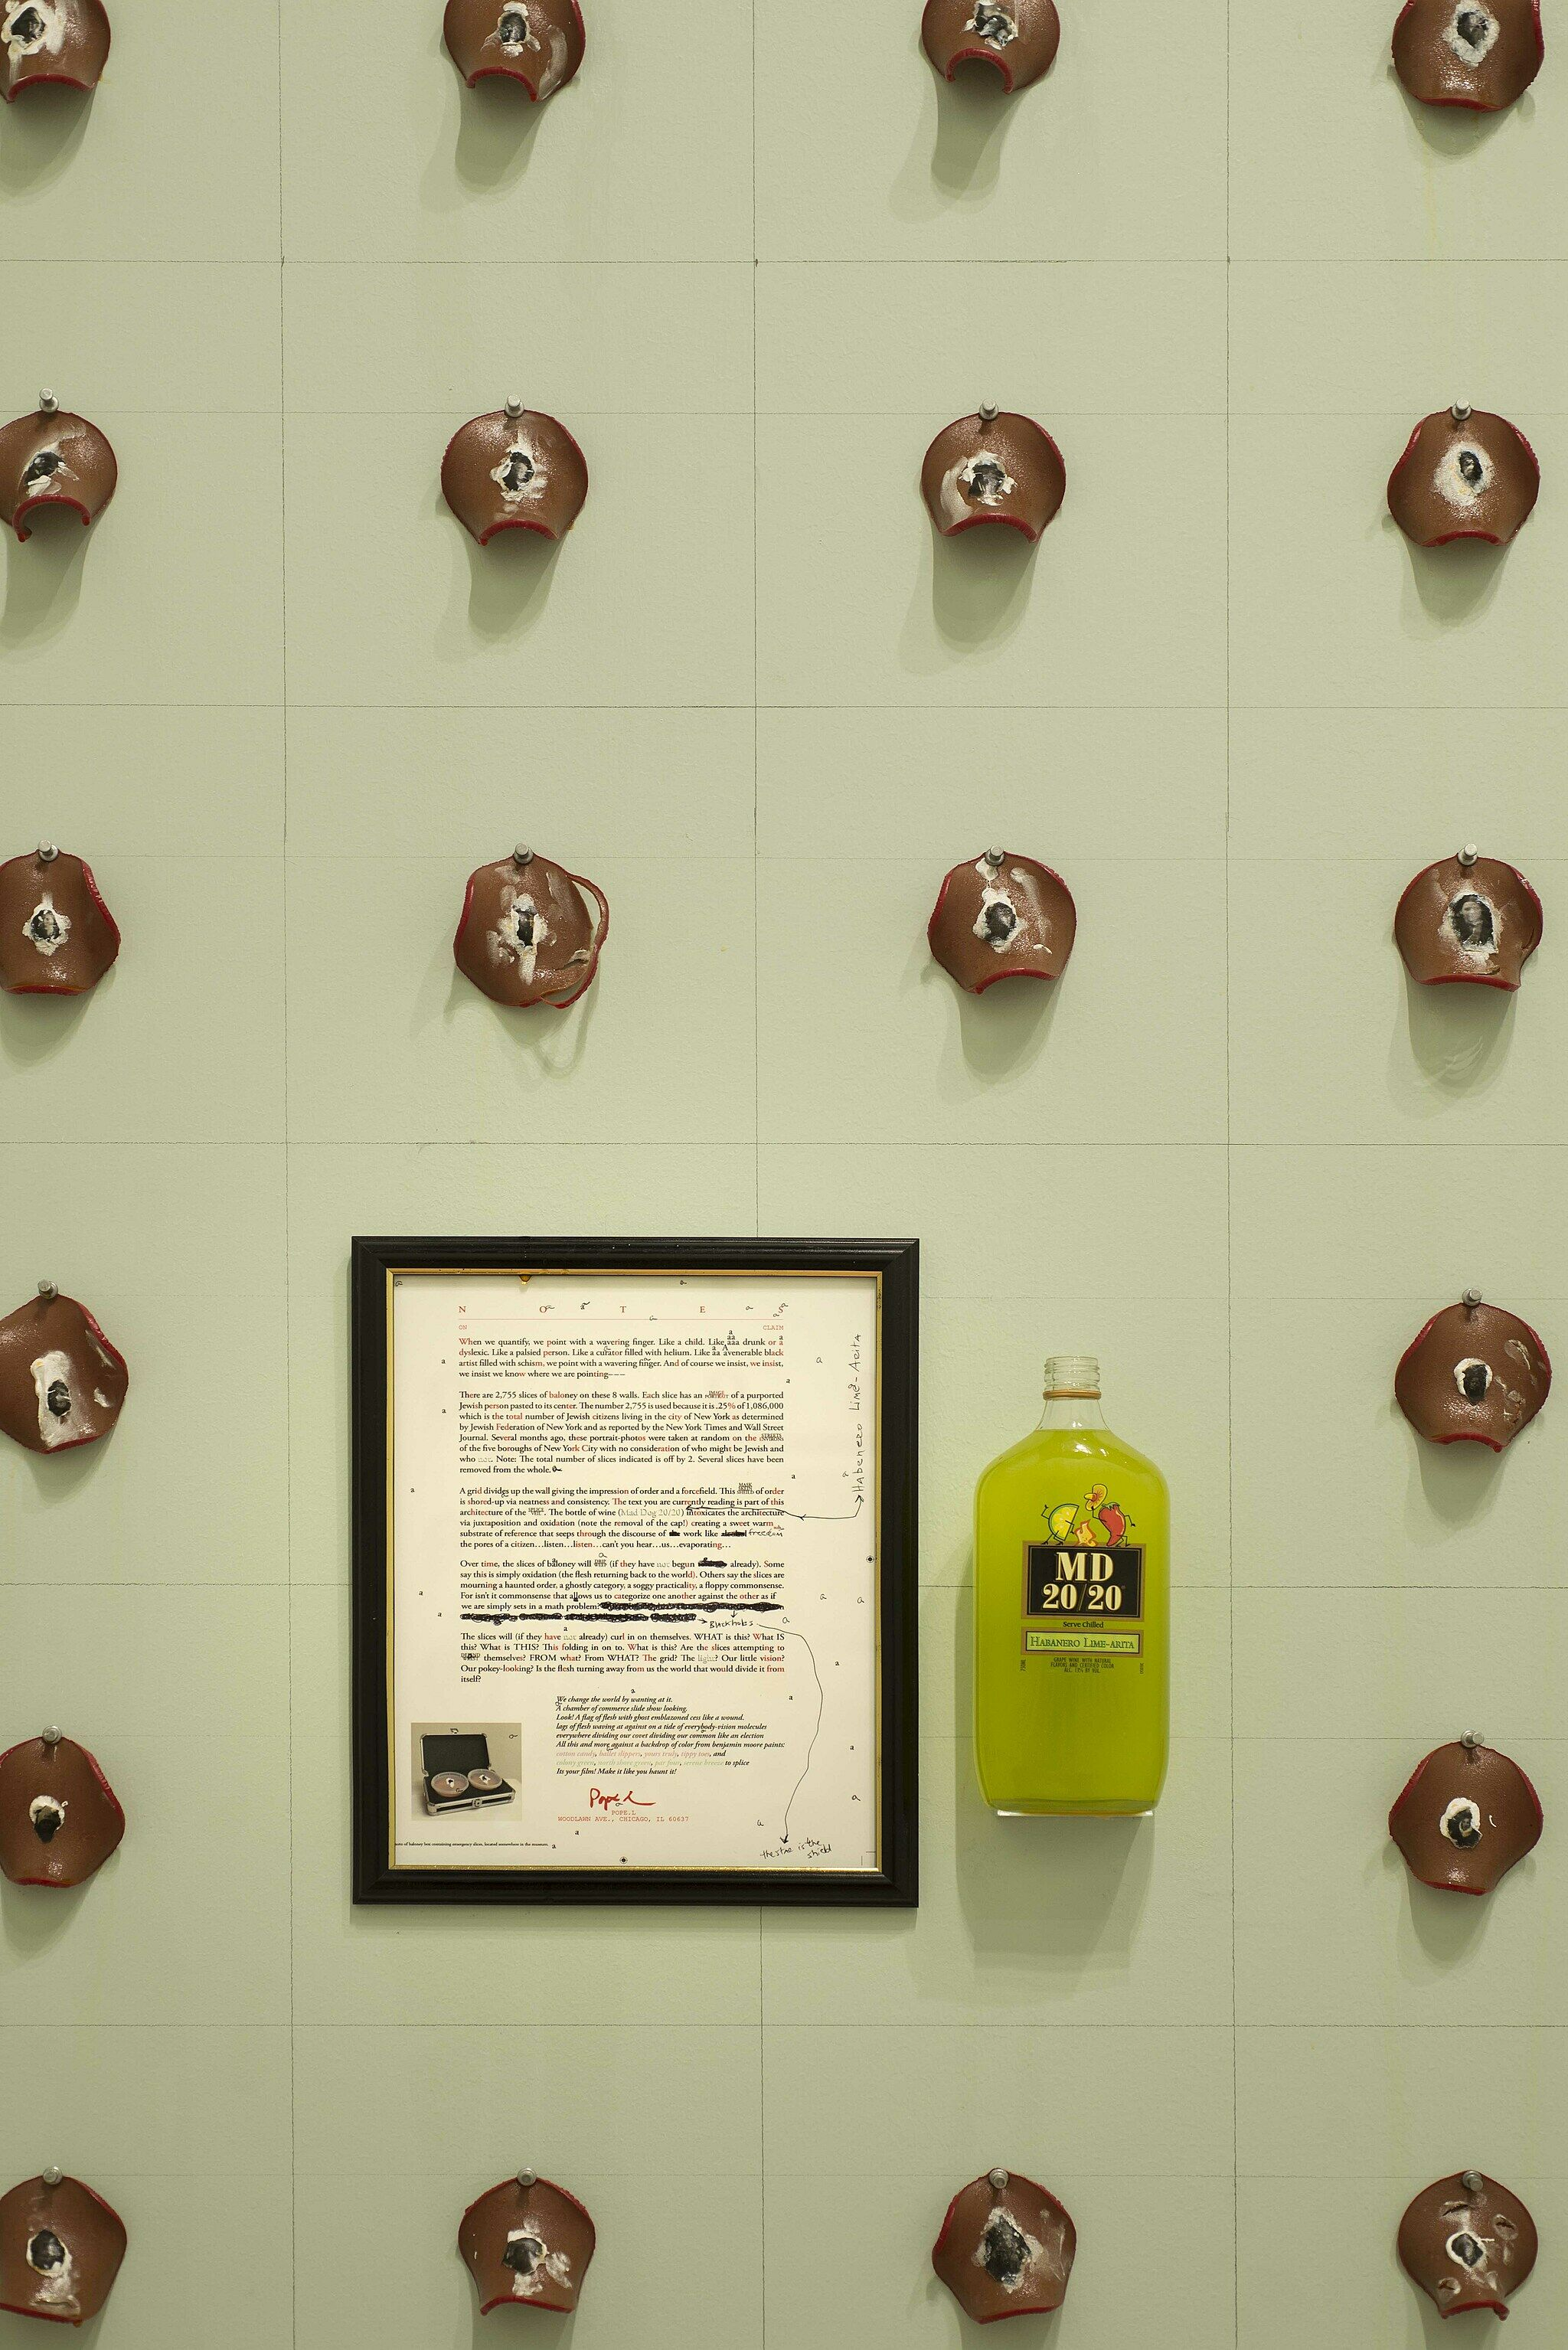 Grid-like structure of objects hung on wall with framed document and liquor bottle